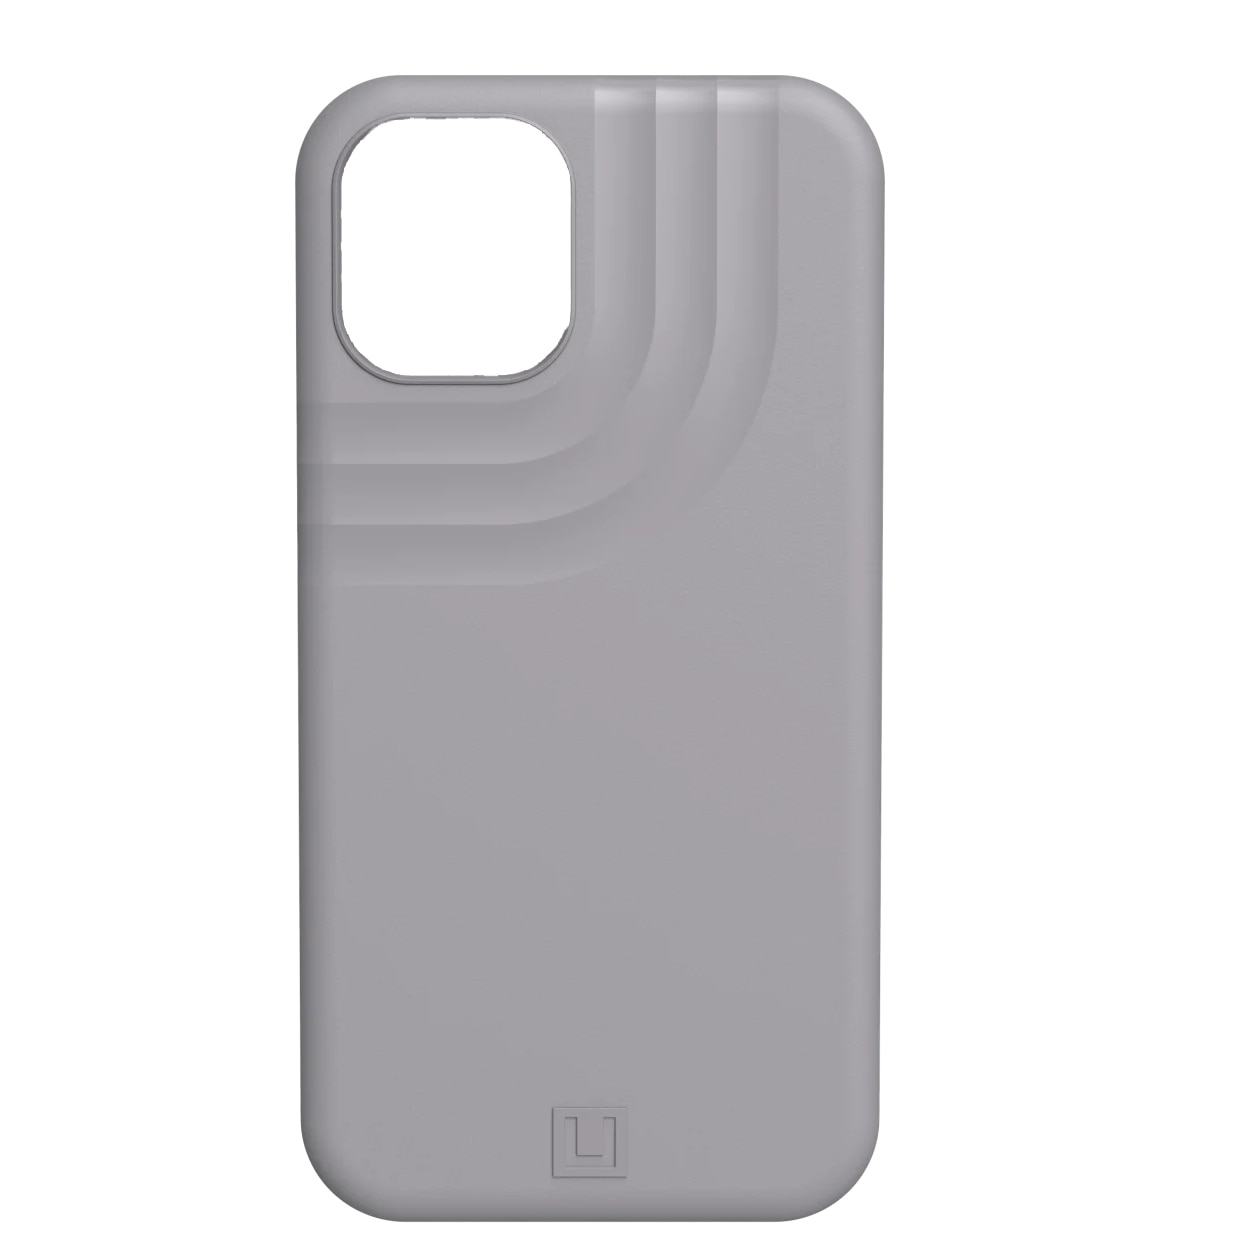 Fotografie Husa de protectie Anchor iPhone 12 Mini, Light Gray